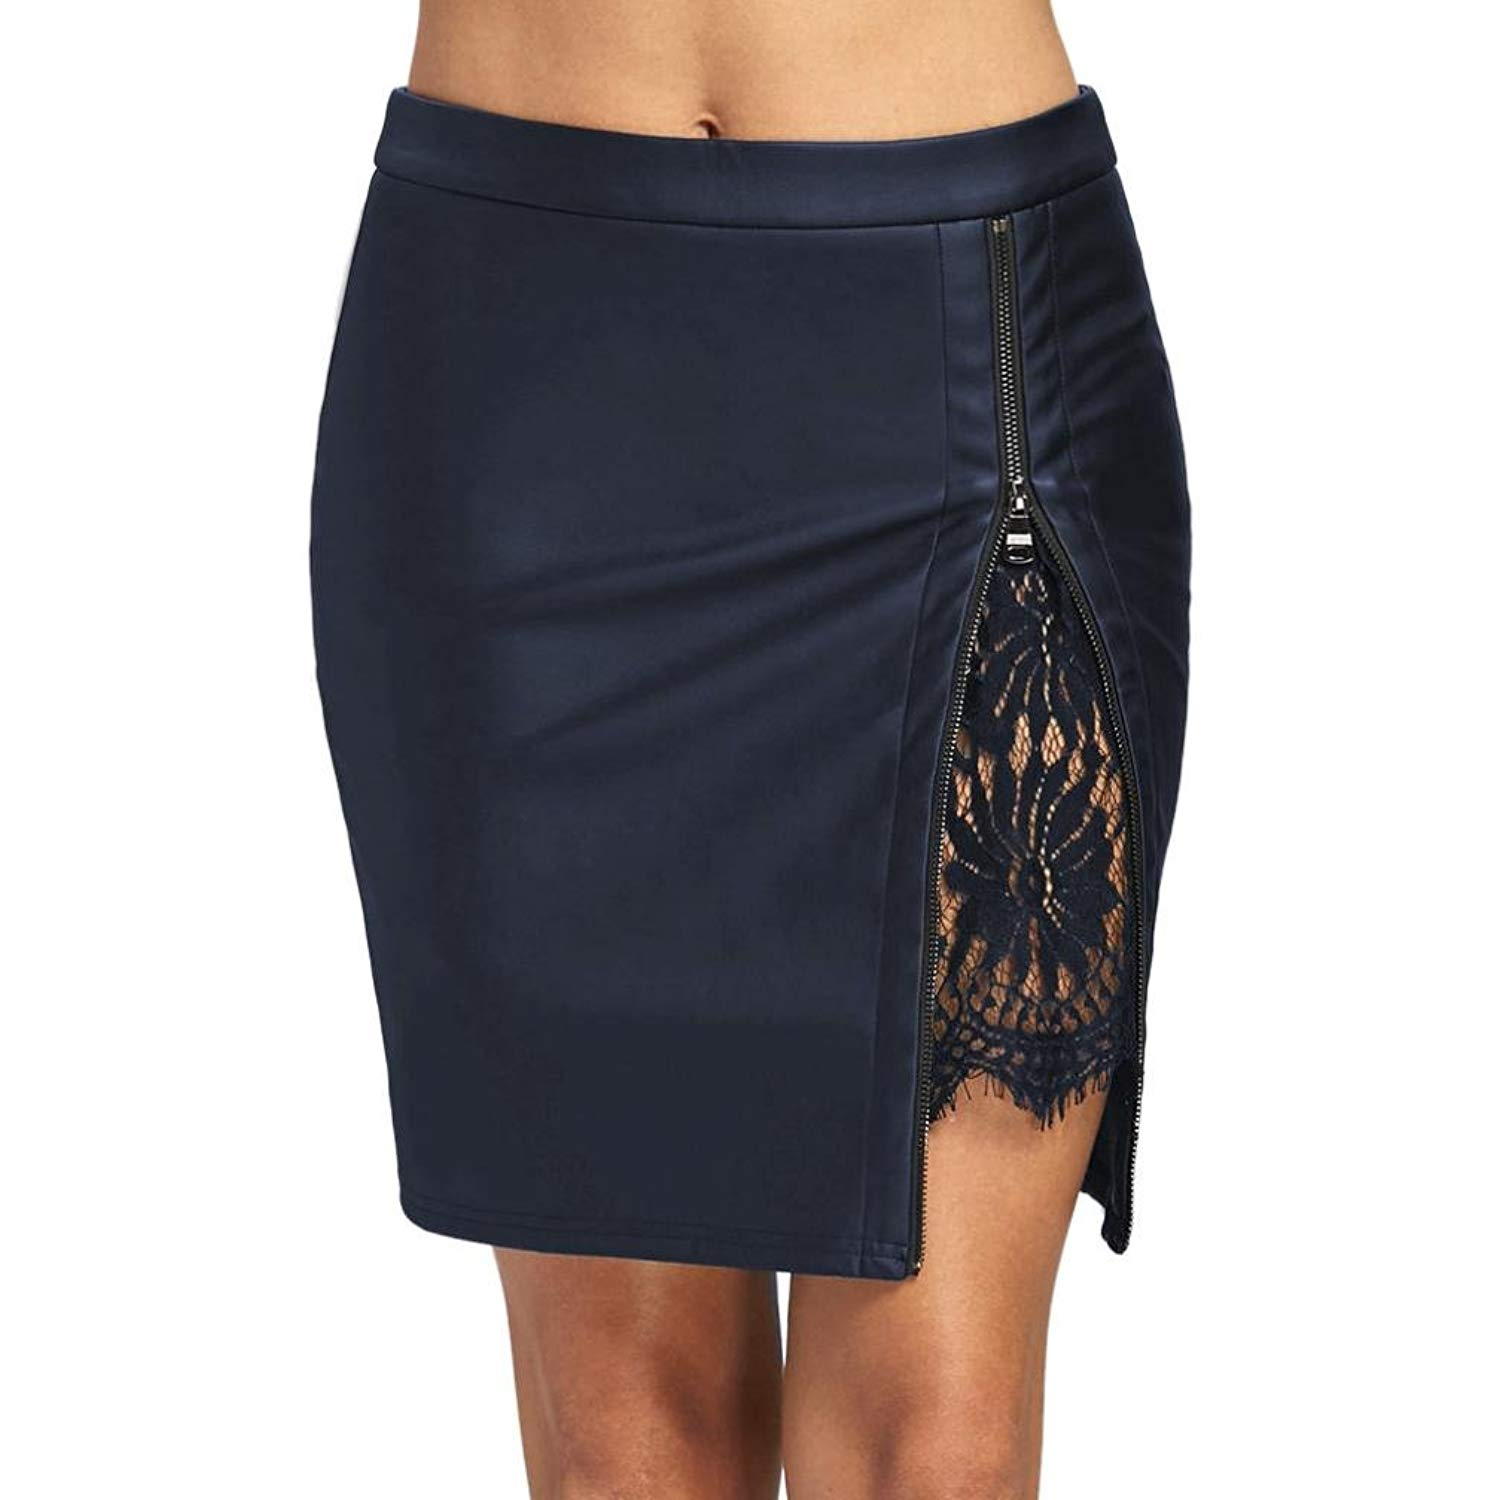 5deff1d96bd04 Get Quotations · WM   MW Hot Sale! Womens Skirt Sexy Lace Floral Spliced  Zipper Faux Leather Party